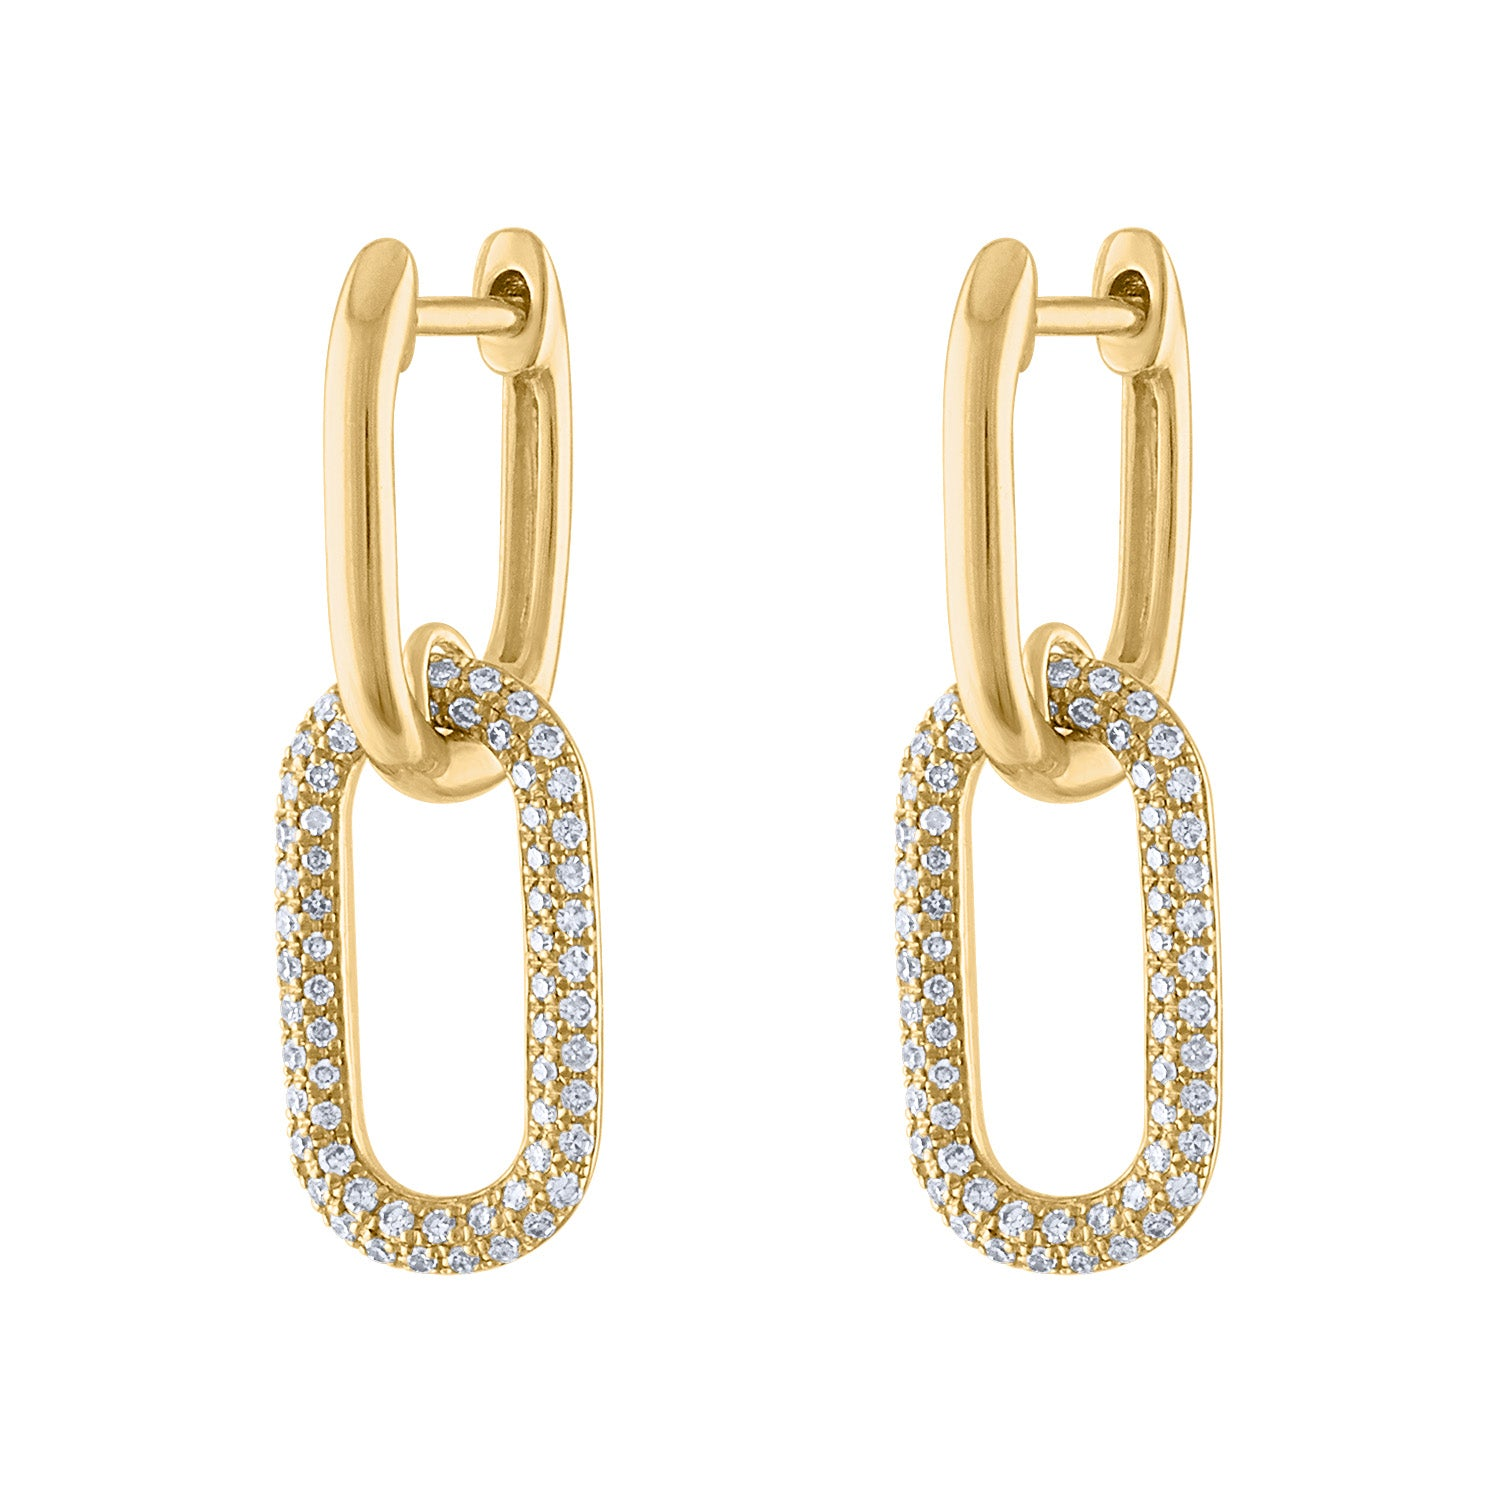 14KT GOLD DIAMOND SMALL 2 OVAL LINK HUGGIE EARRING